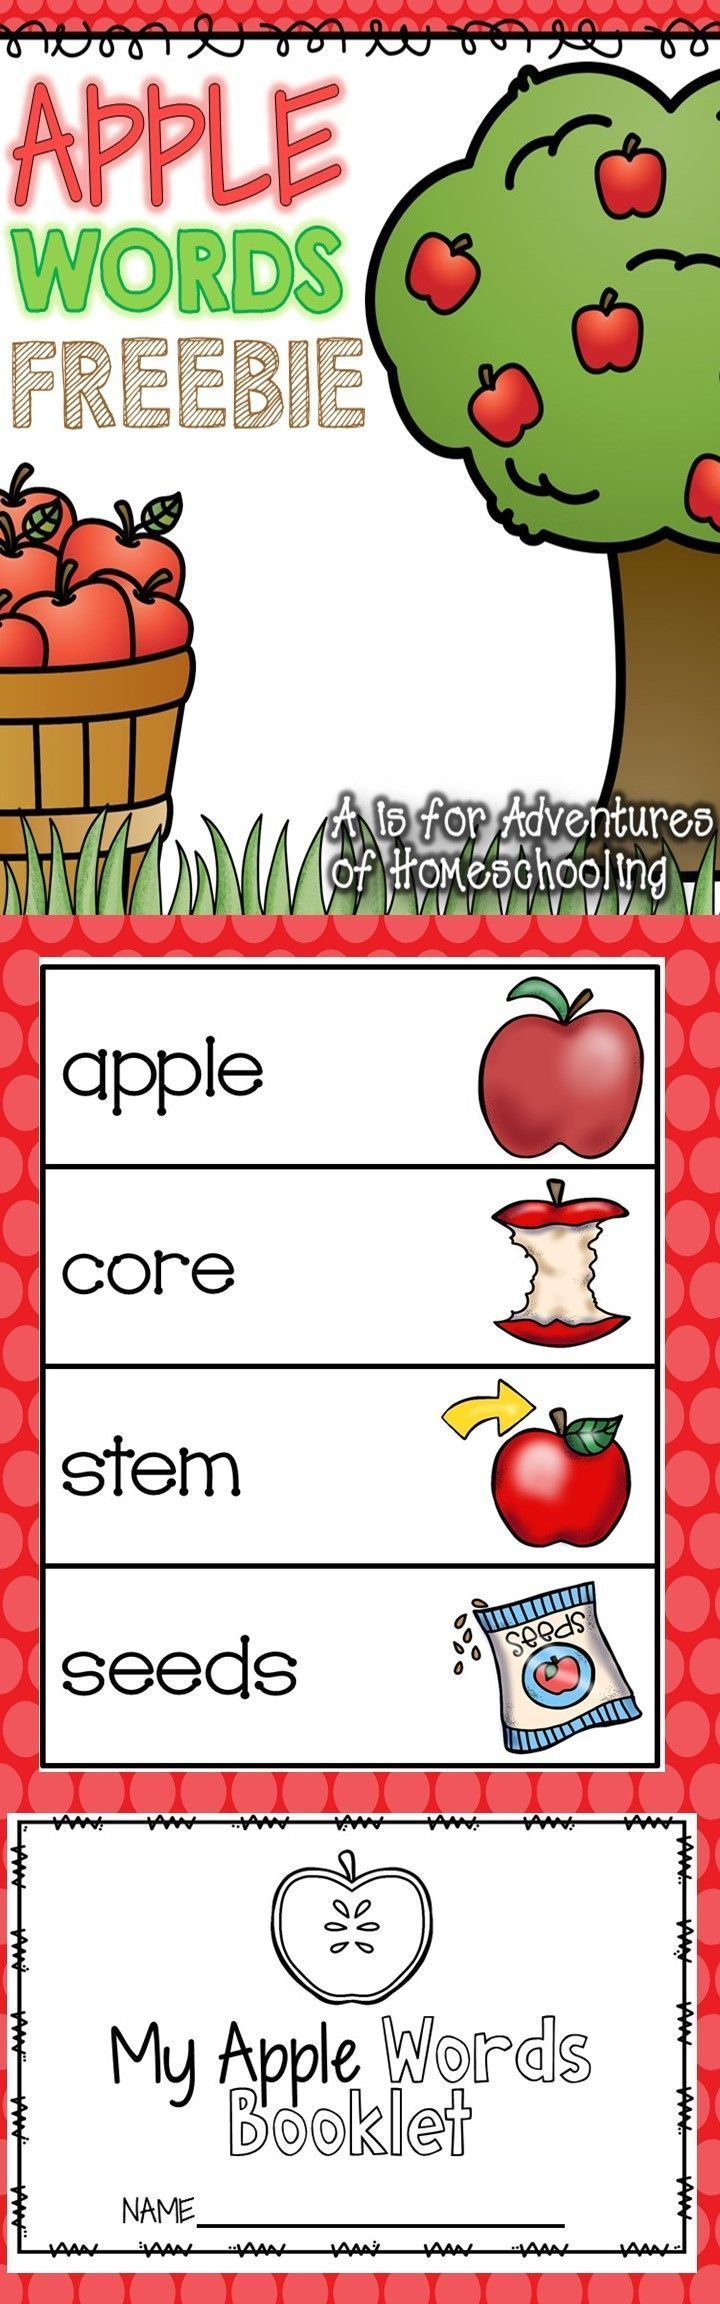 8 Best Proyect Images On Pinterest Science Classroom And Applesc Apple Stem Cell 25 Gram 30 Sachets Steam Freebie